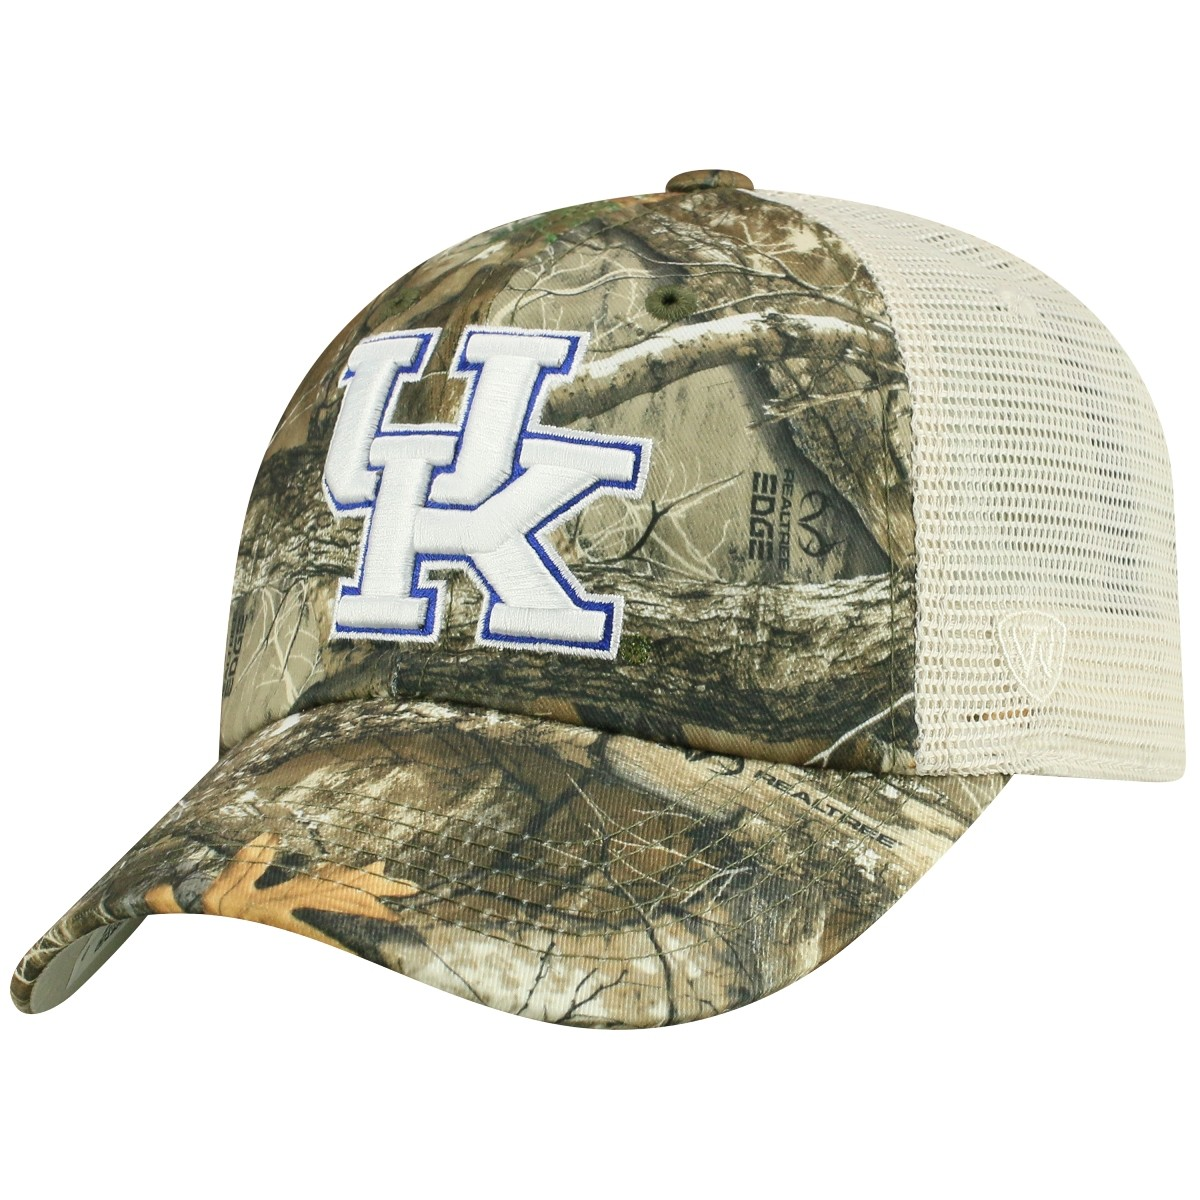 premium selection 6c712 d6417 Details about Kentucky Wildcats NCAA Top of the World